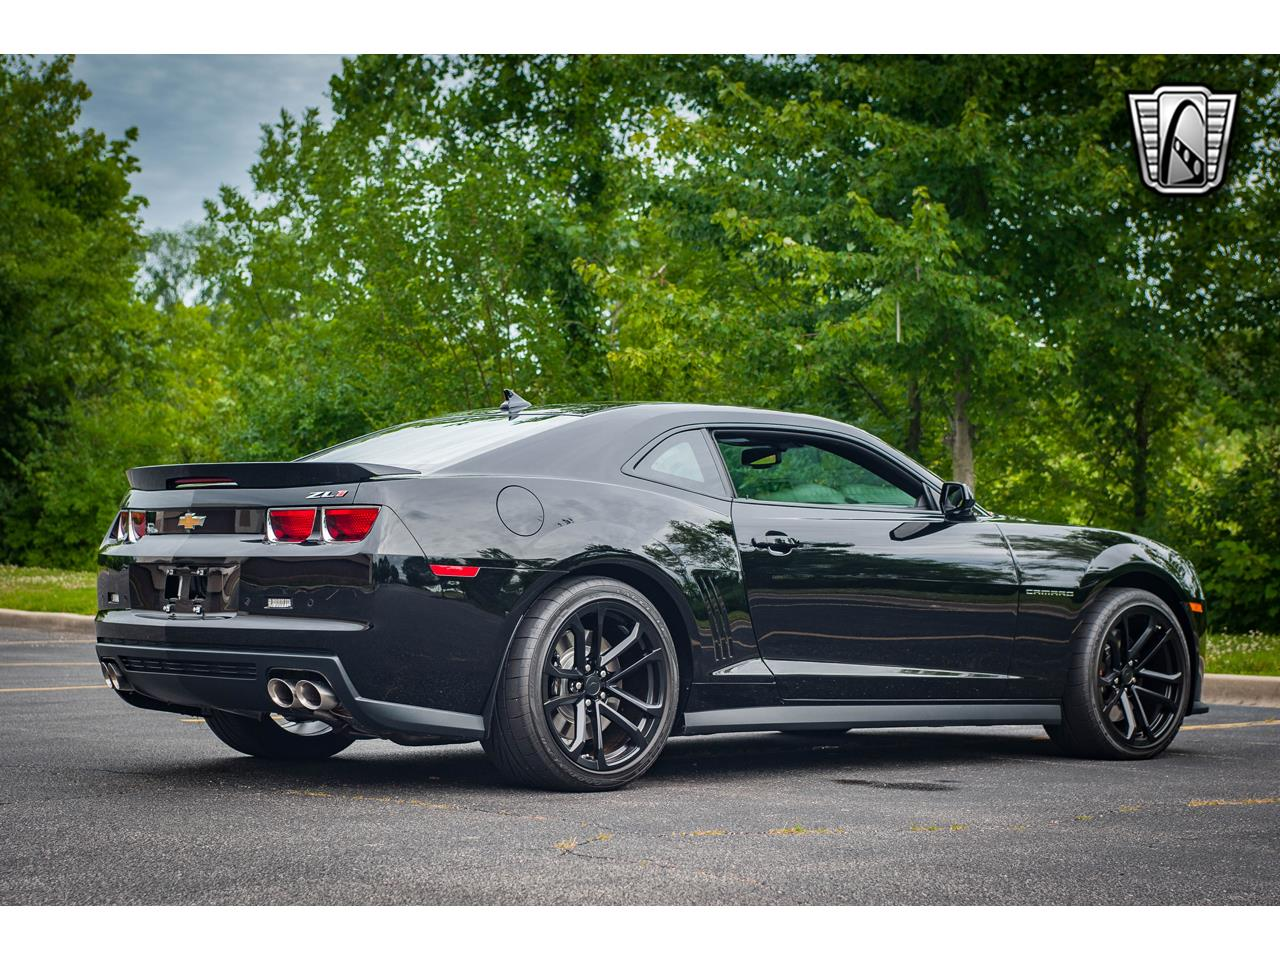 2012 Chevrolet Camaro for sale in O'Fallon, IL – photo 31